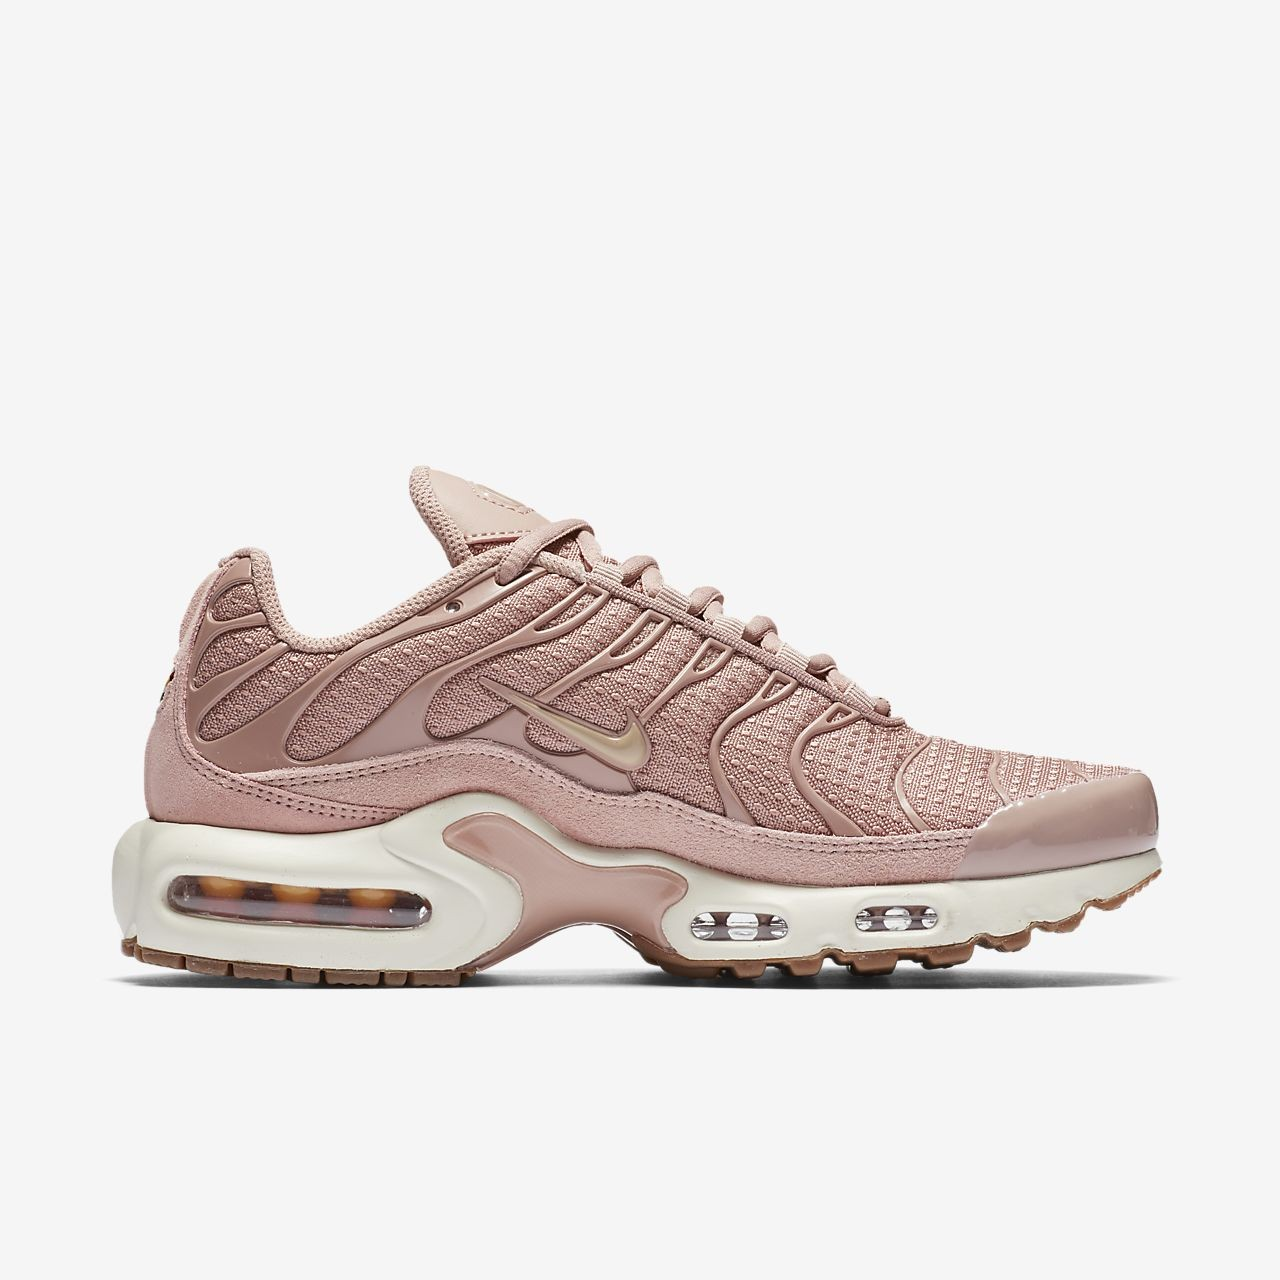 nike air max plus tn femme. Black Bedroom Furniture Sets. Home Design Ideas